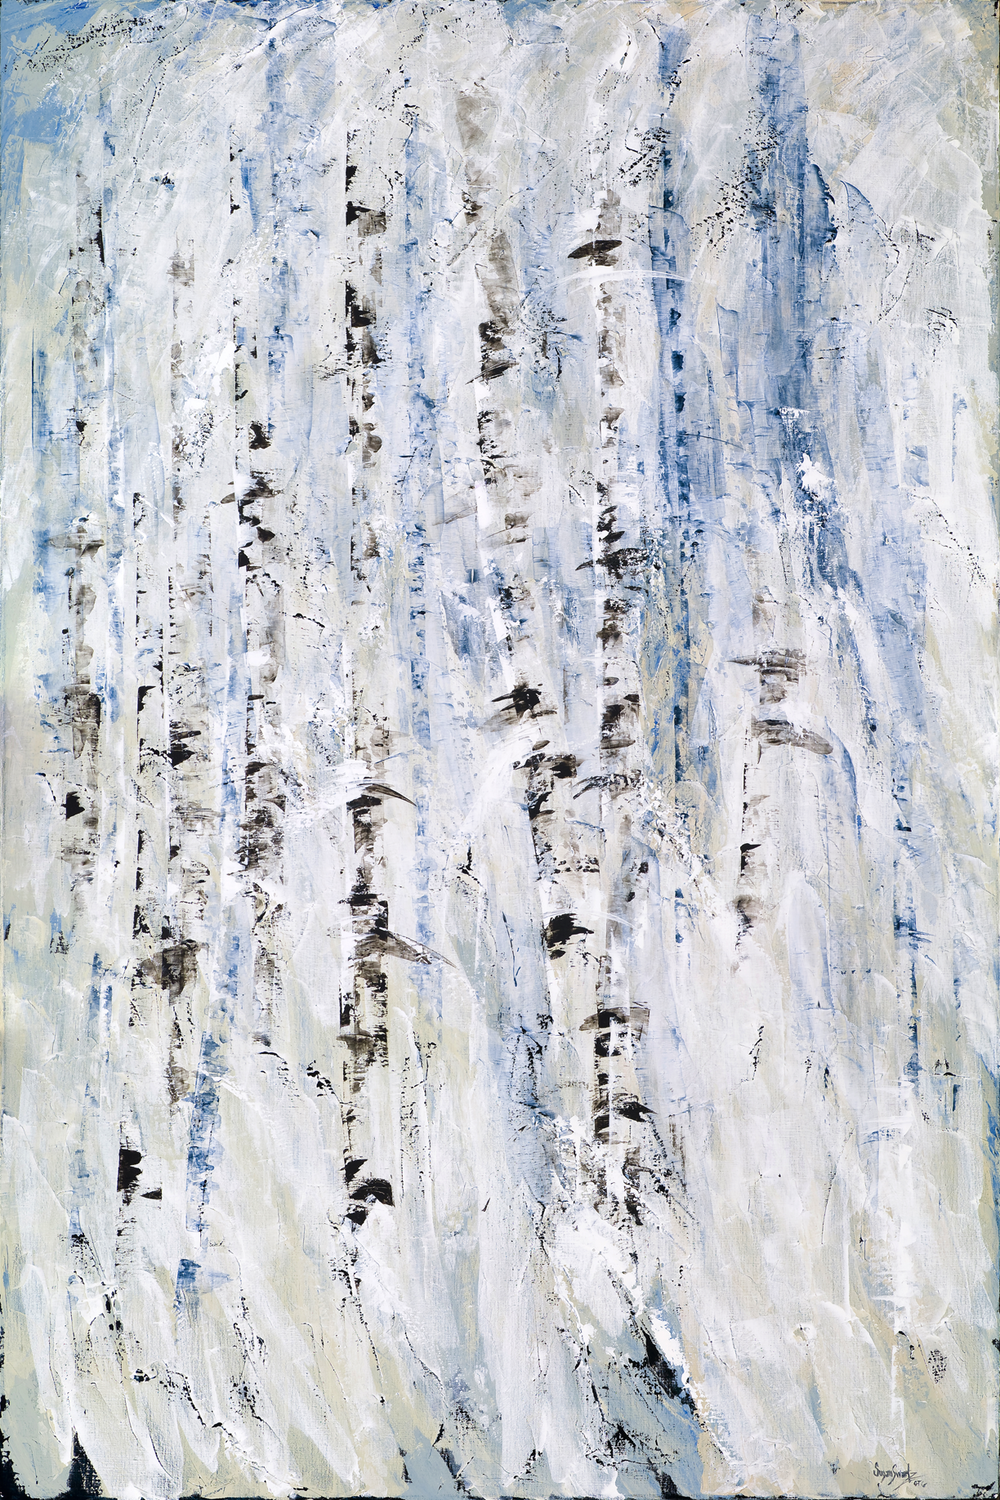 Winter's Hush III  48 x 72 in, 122 x 183 cm